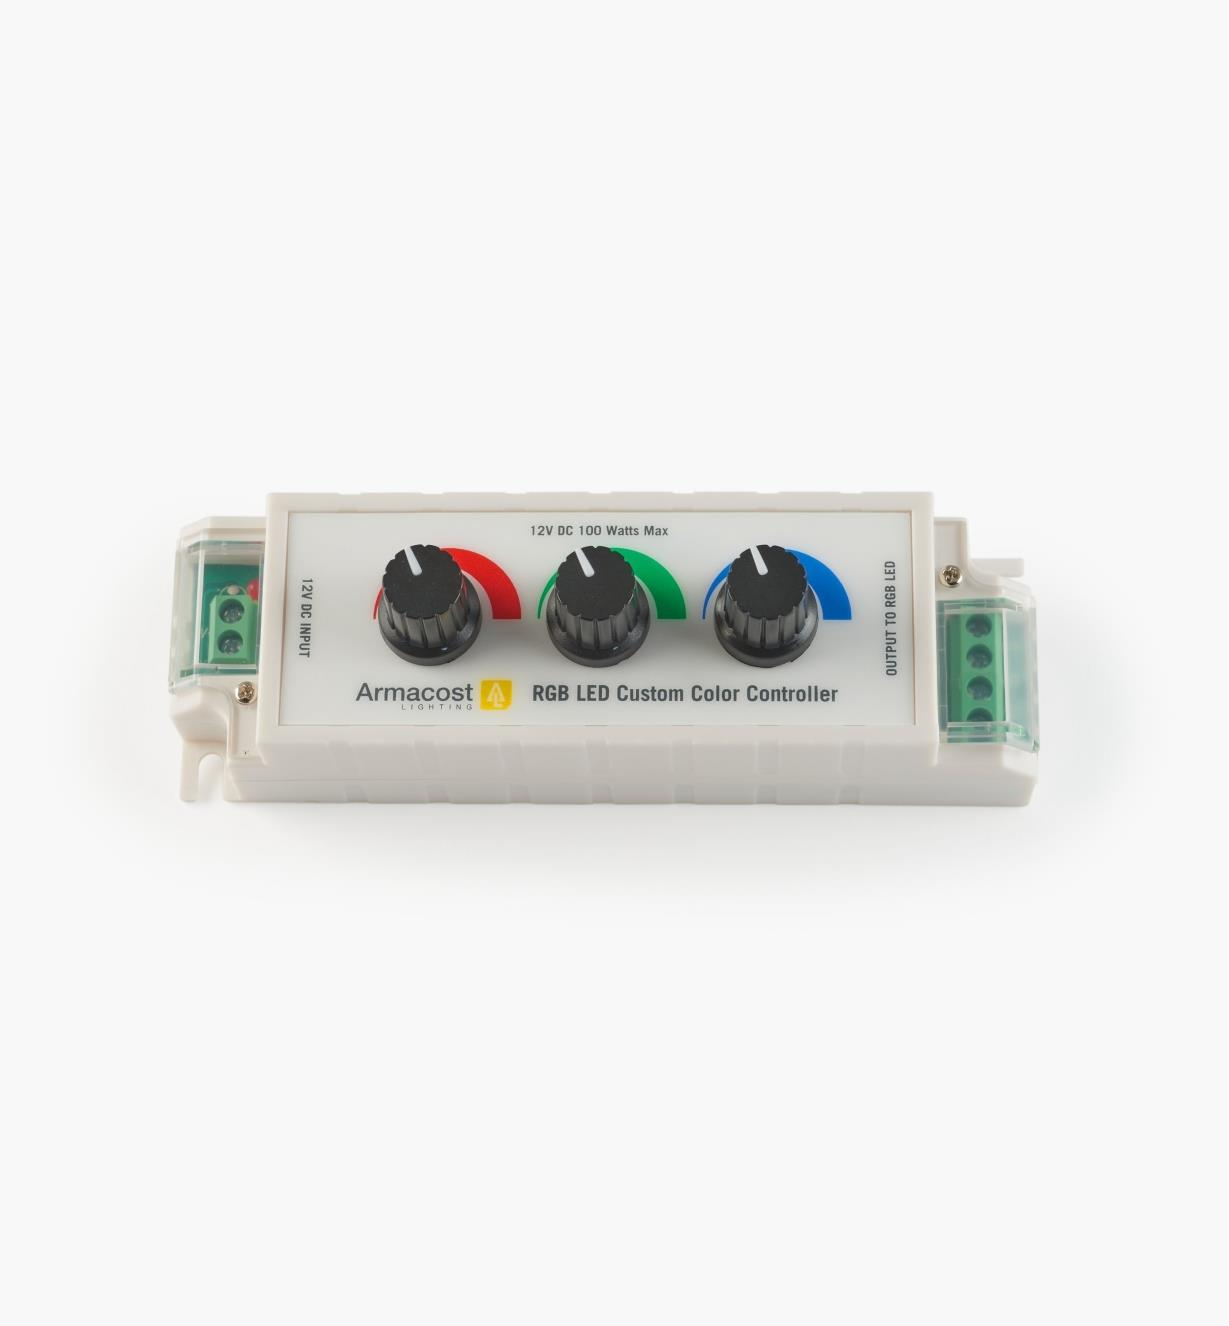 00U4196 - Custom Color RGB LED Controller/Light Mixer